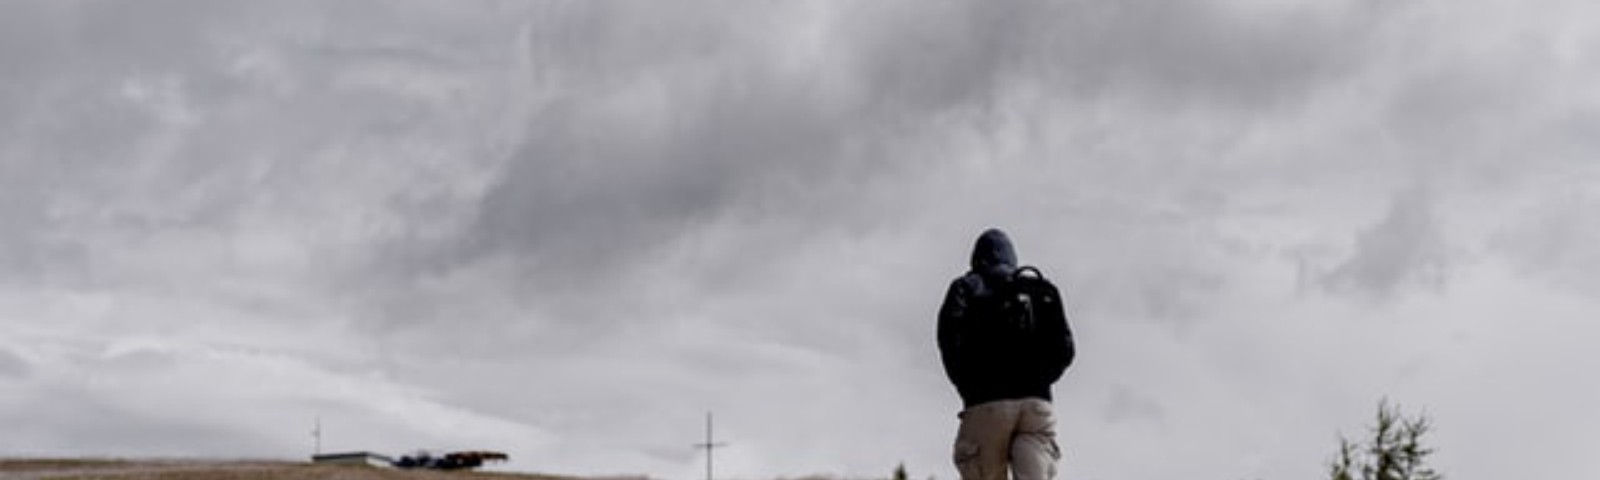 Person in black jacket and beige shorts walking under a grey sky